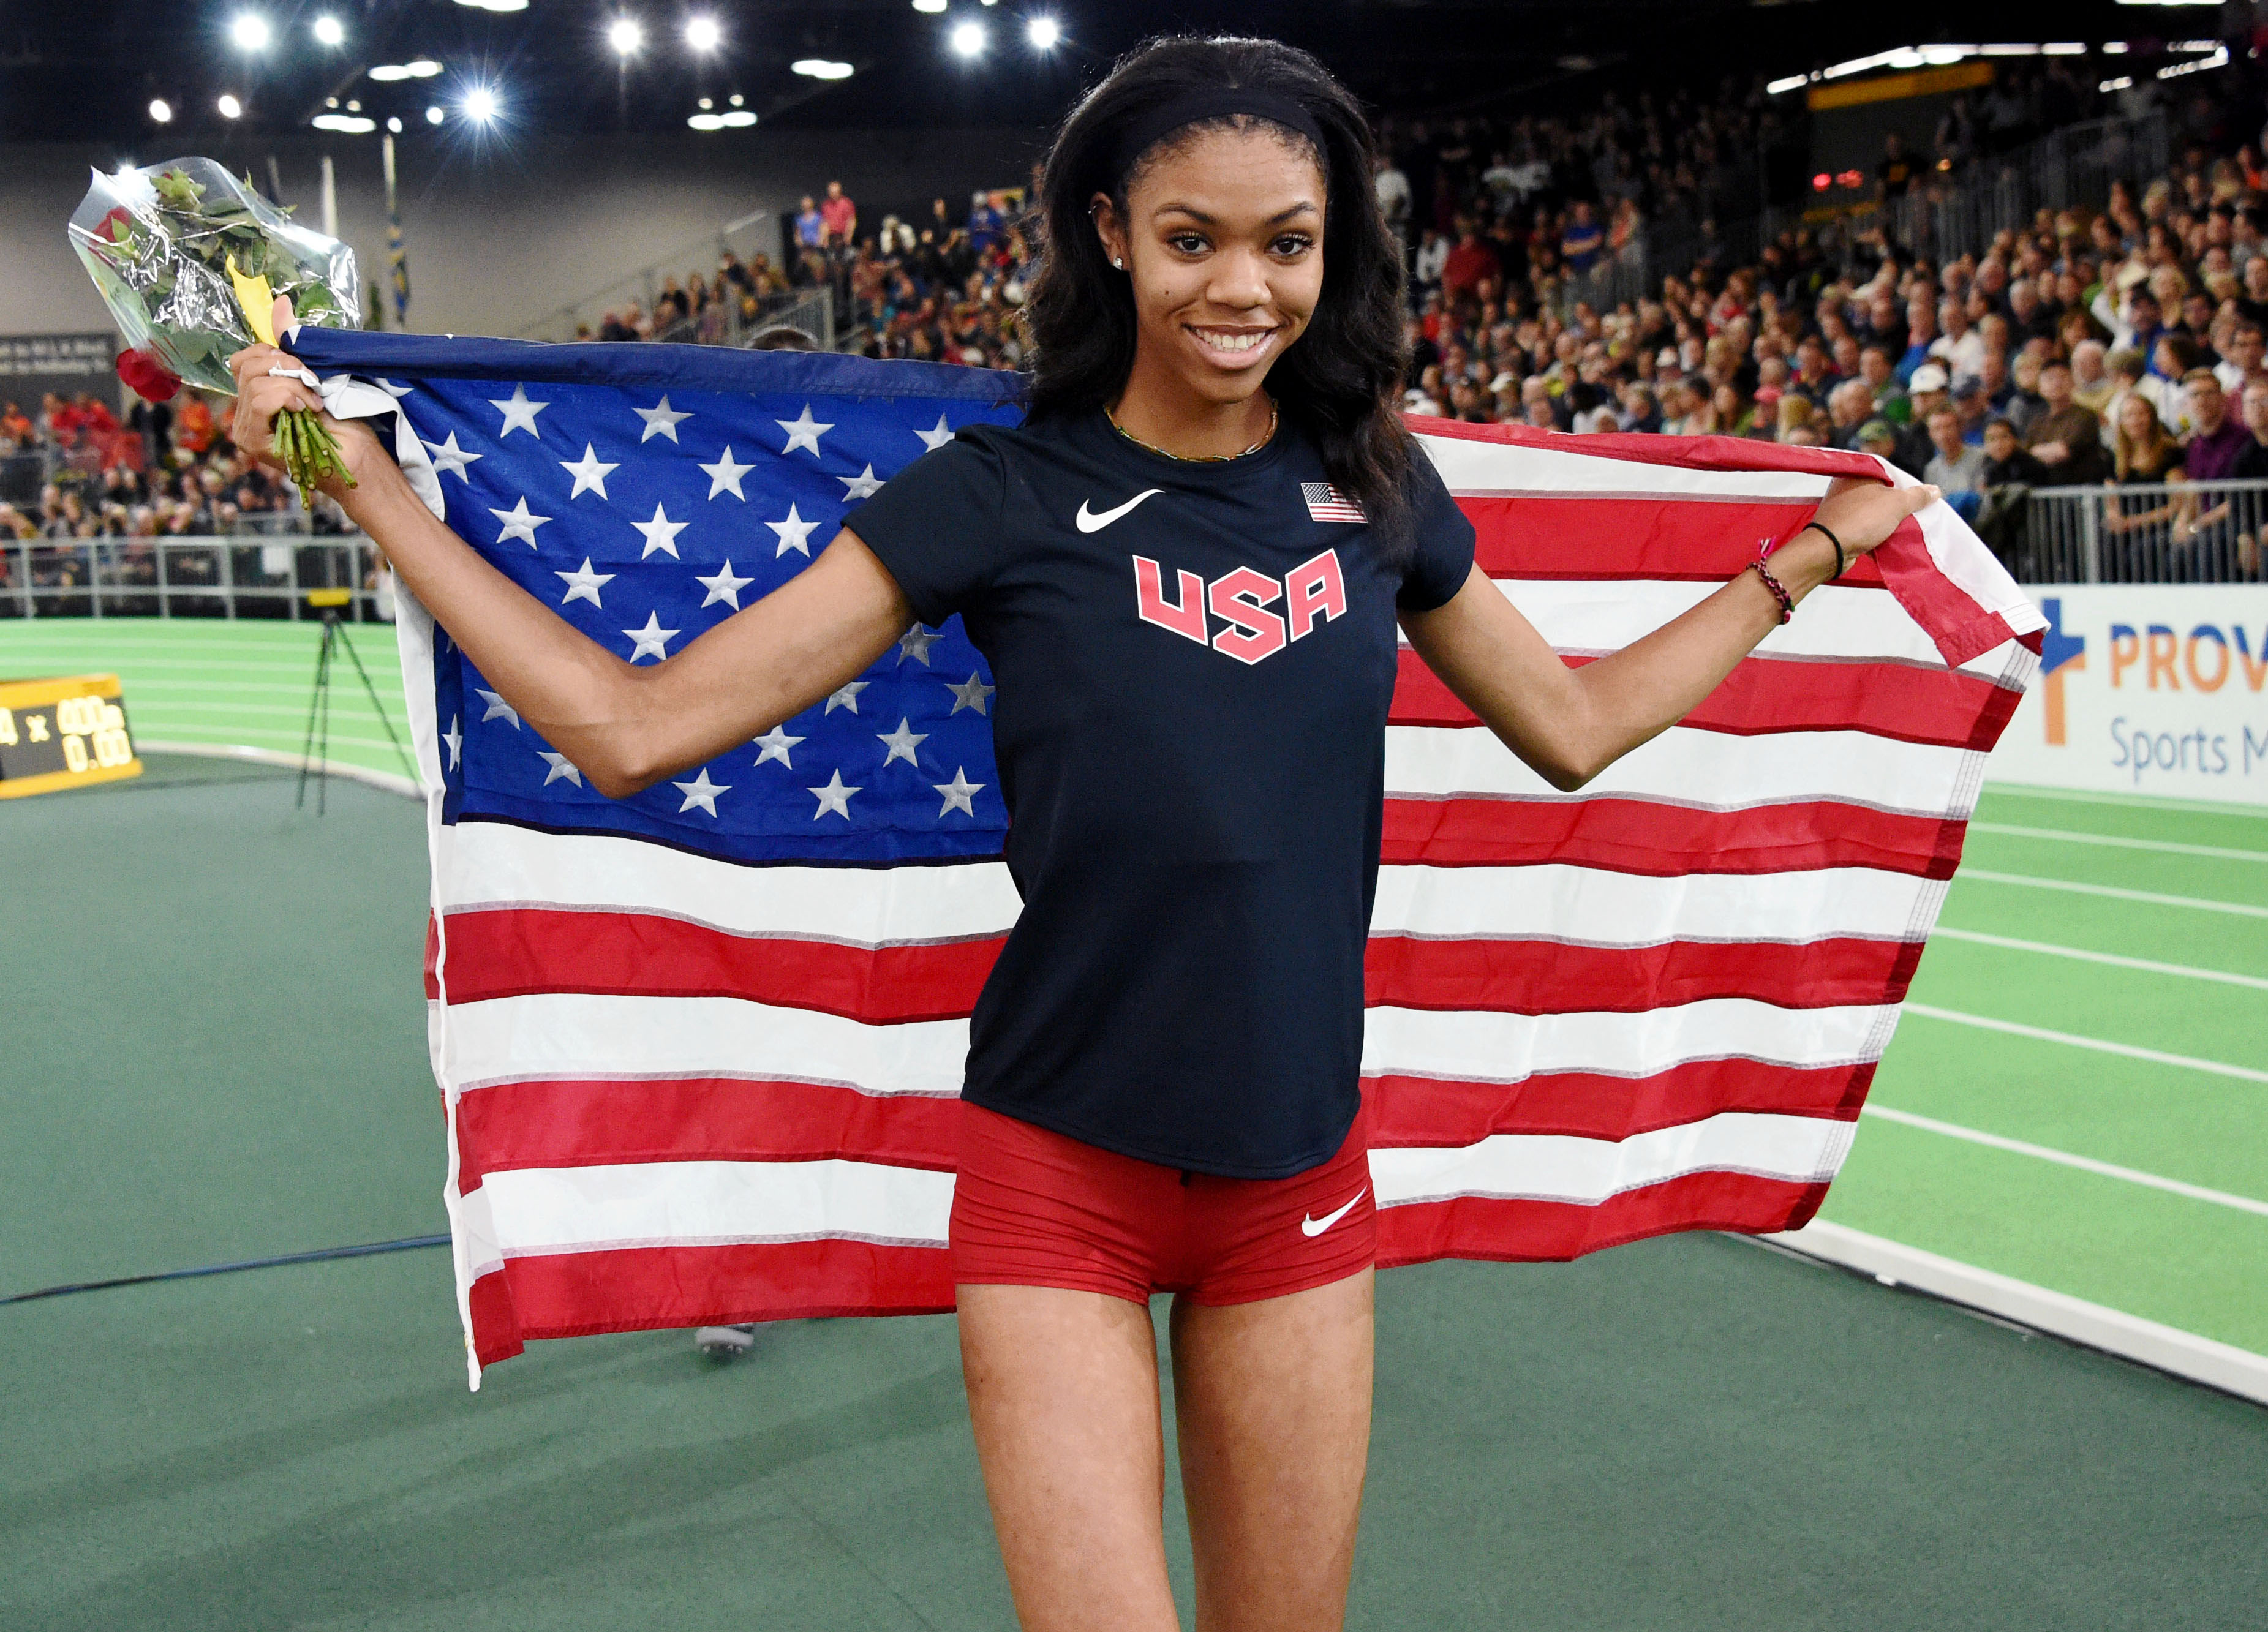 Vashti Cunningham poses with the flag after winning the women's high jump during the 2016 IAAF World Championships. (Photo: Kirby Lee, USA TODAY Sports)